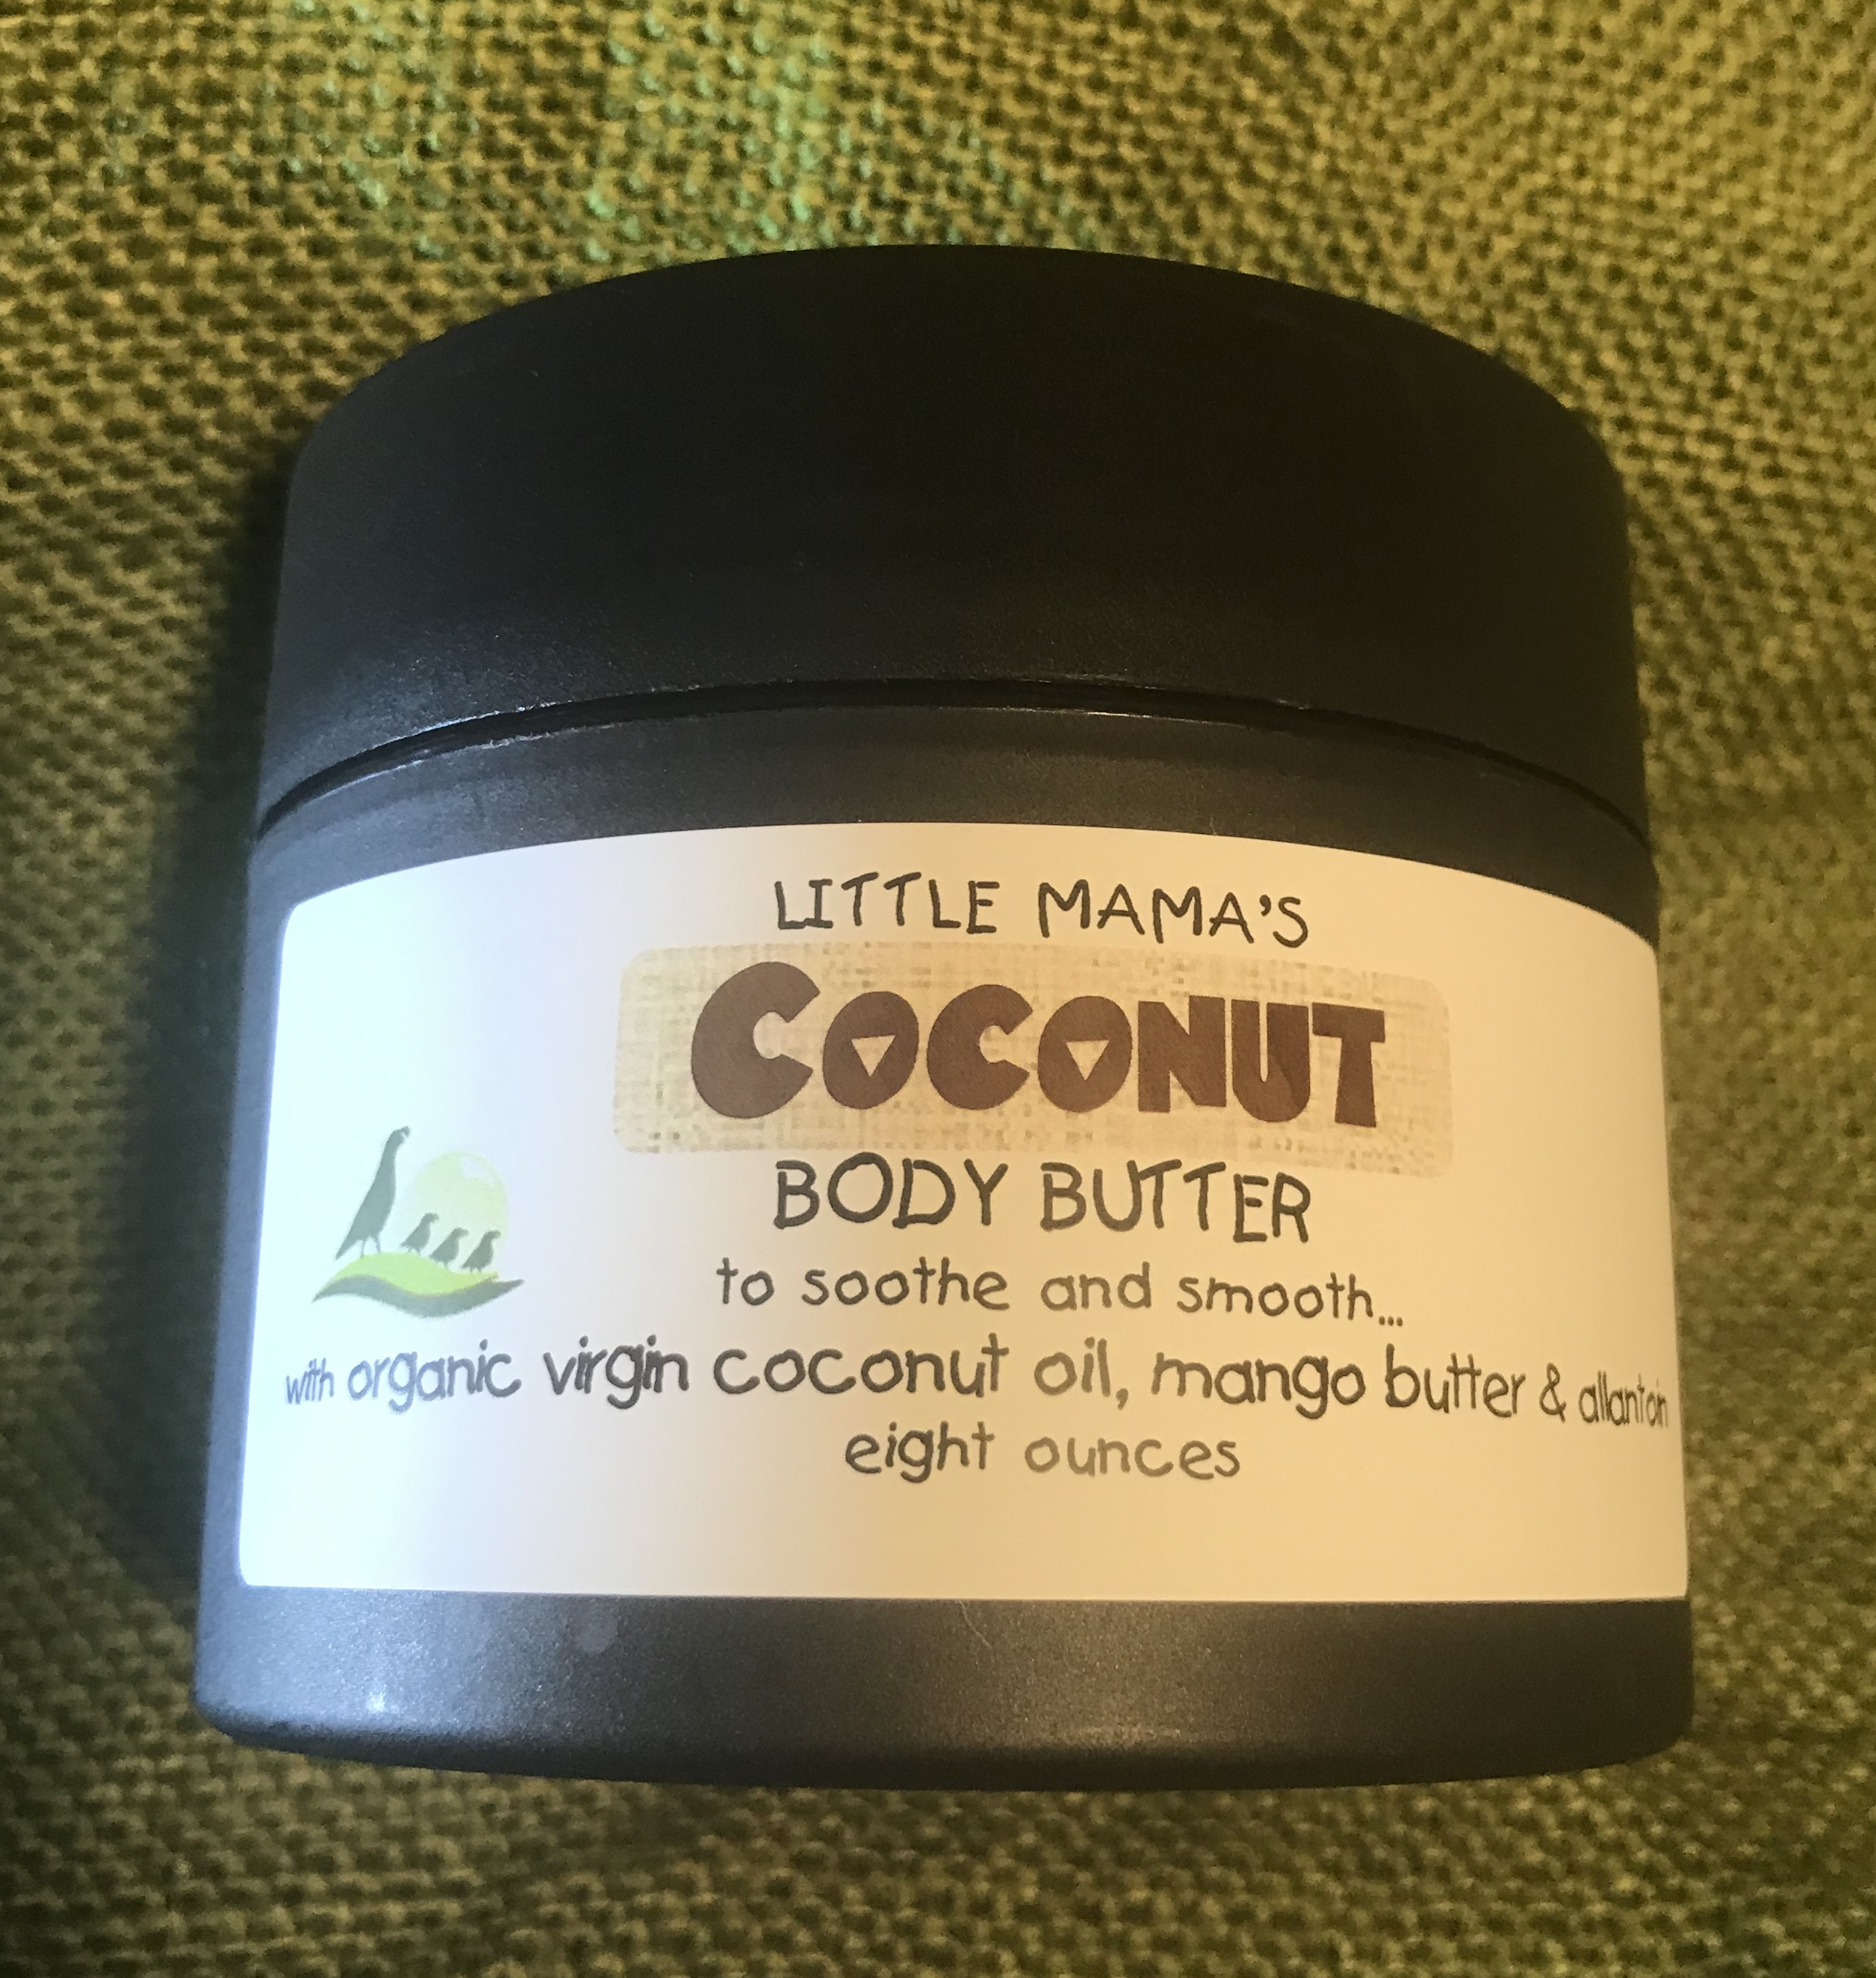 Coconut Body Butter (Airless Pump)